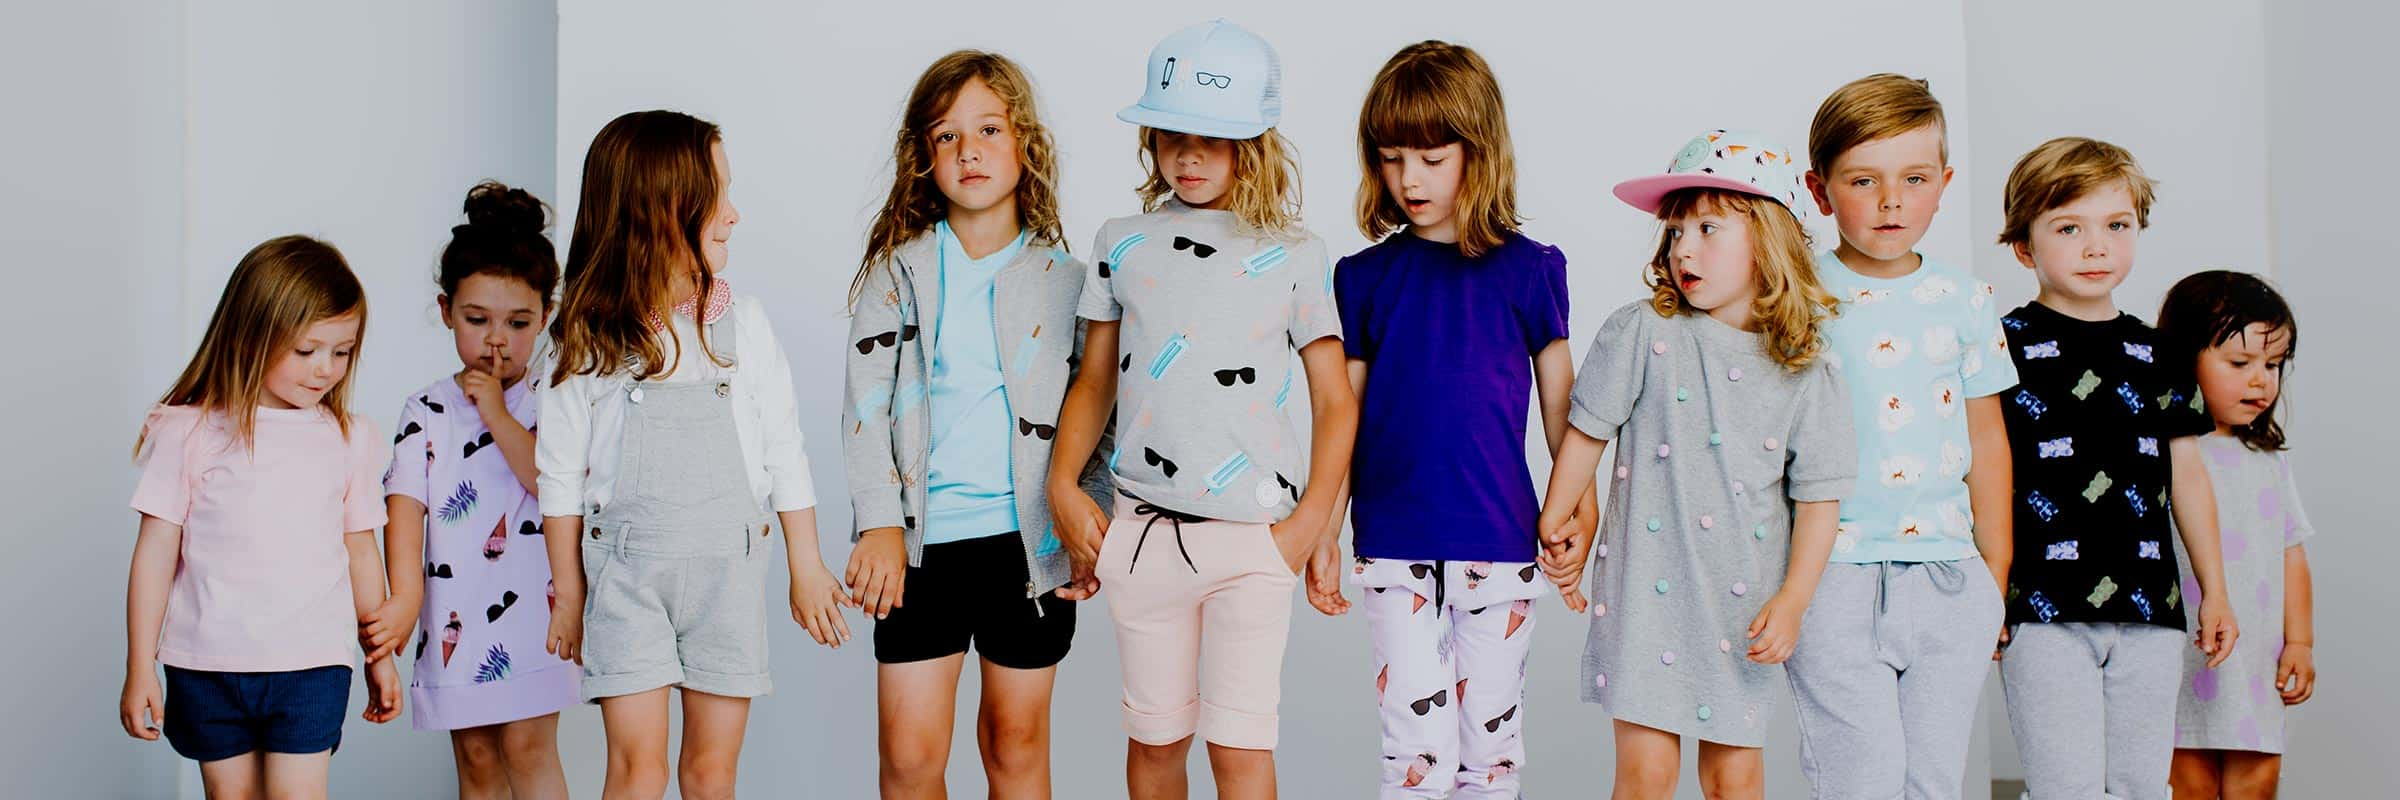 Youth Collections. Kids' Fashion for Back to School: First-Day Looks They'll Love